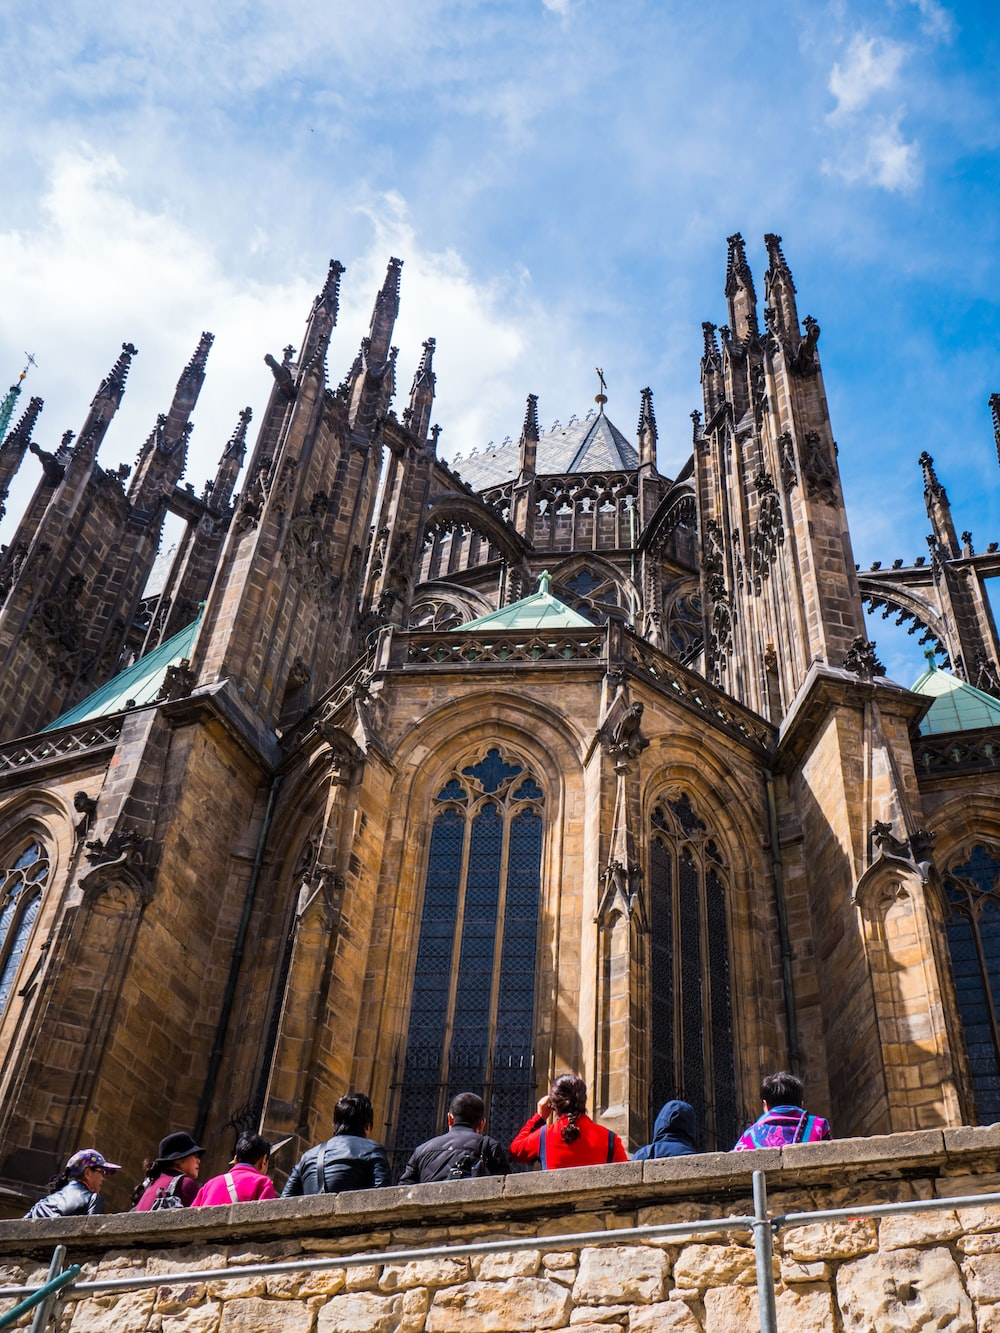 people standing near St. Vitus Cathedral in Prague, Czechia under blue and white sky